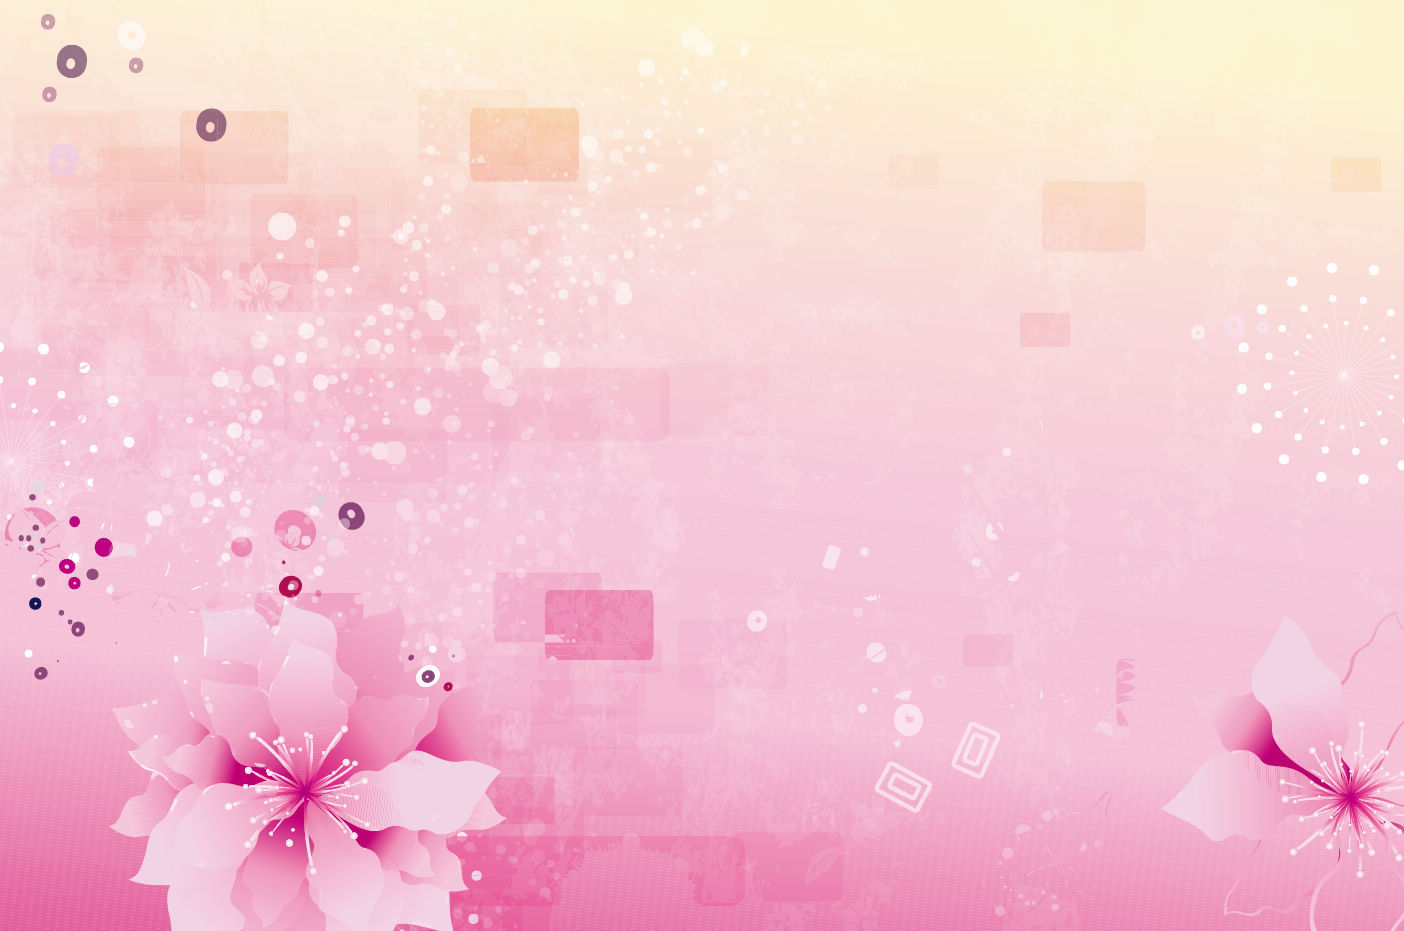 Free Download Abstract Pink Flowers Background Vector Graphics